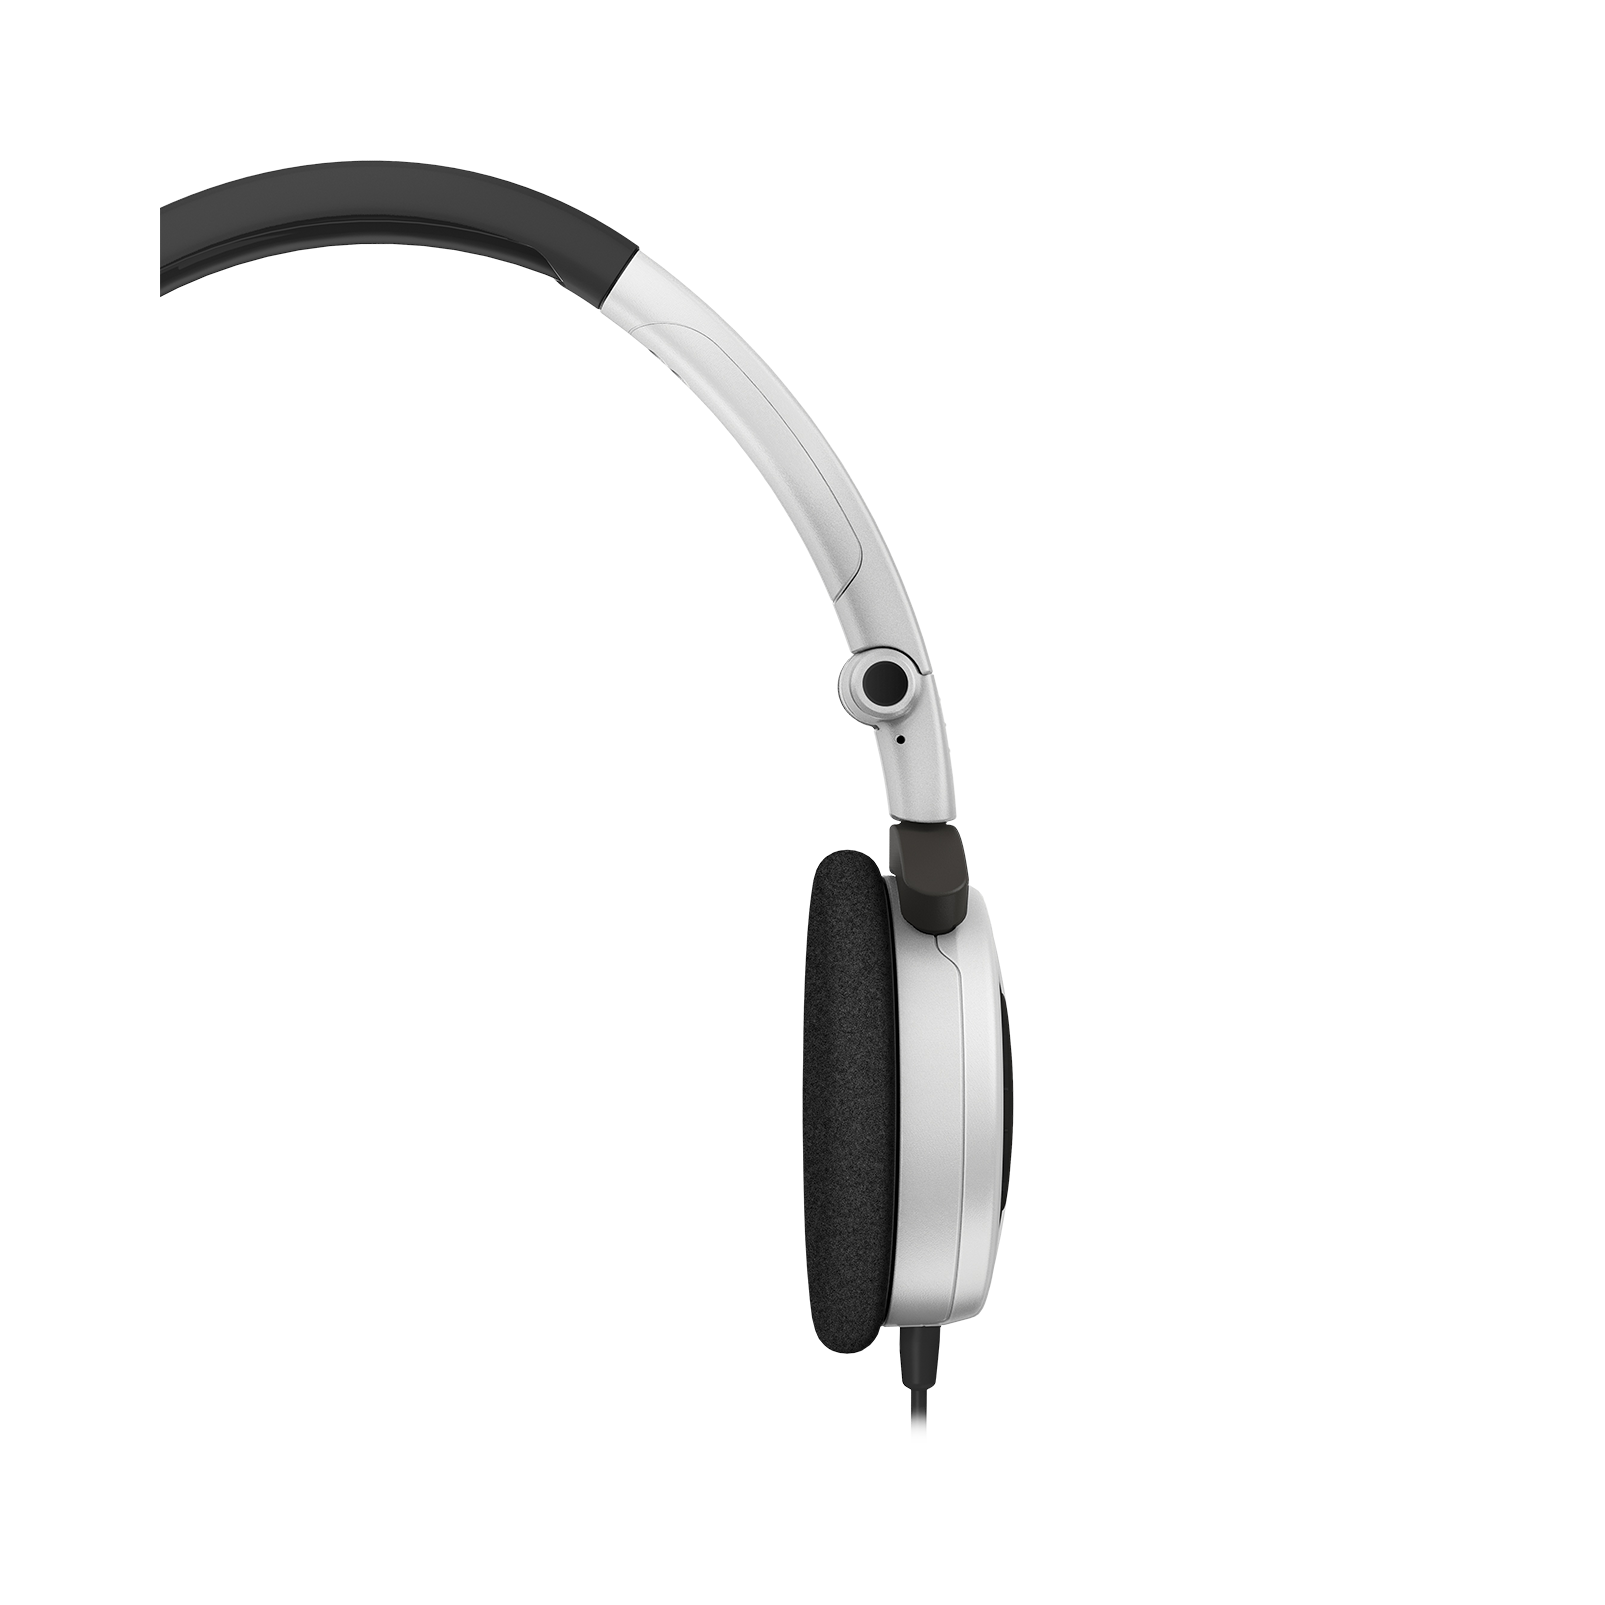 Y 30 - White - Stylish, uncomplicated, foldable headphones with 1 button universal remote/mic - Detailshot 2